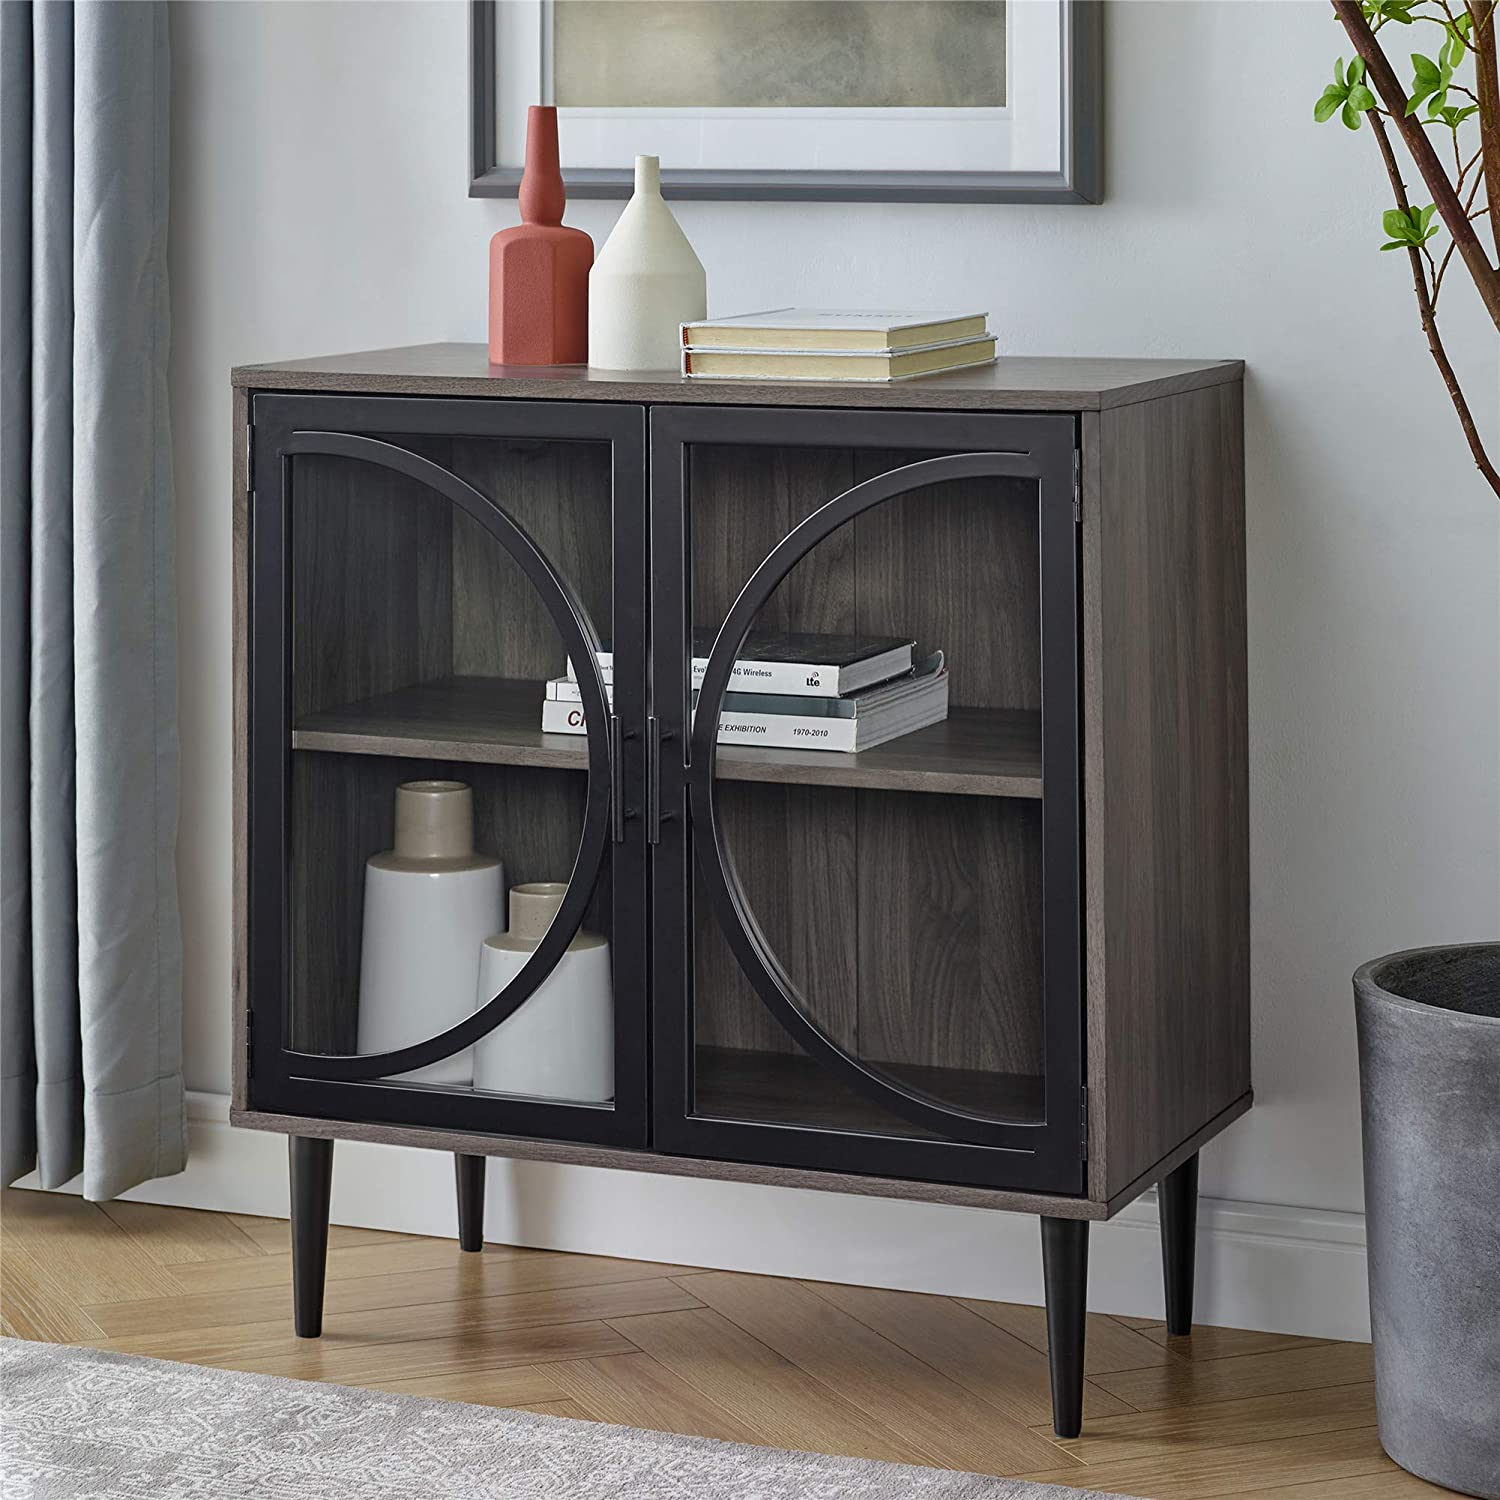 WE Furniture AZF30LOLASG Industrial Metal Wood Buffet and Bar Cart Kitchen Storage Cabinet, 30 Inch, Slate Grey